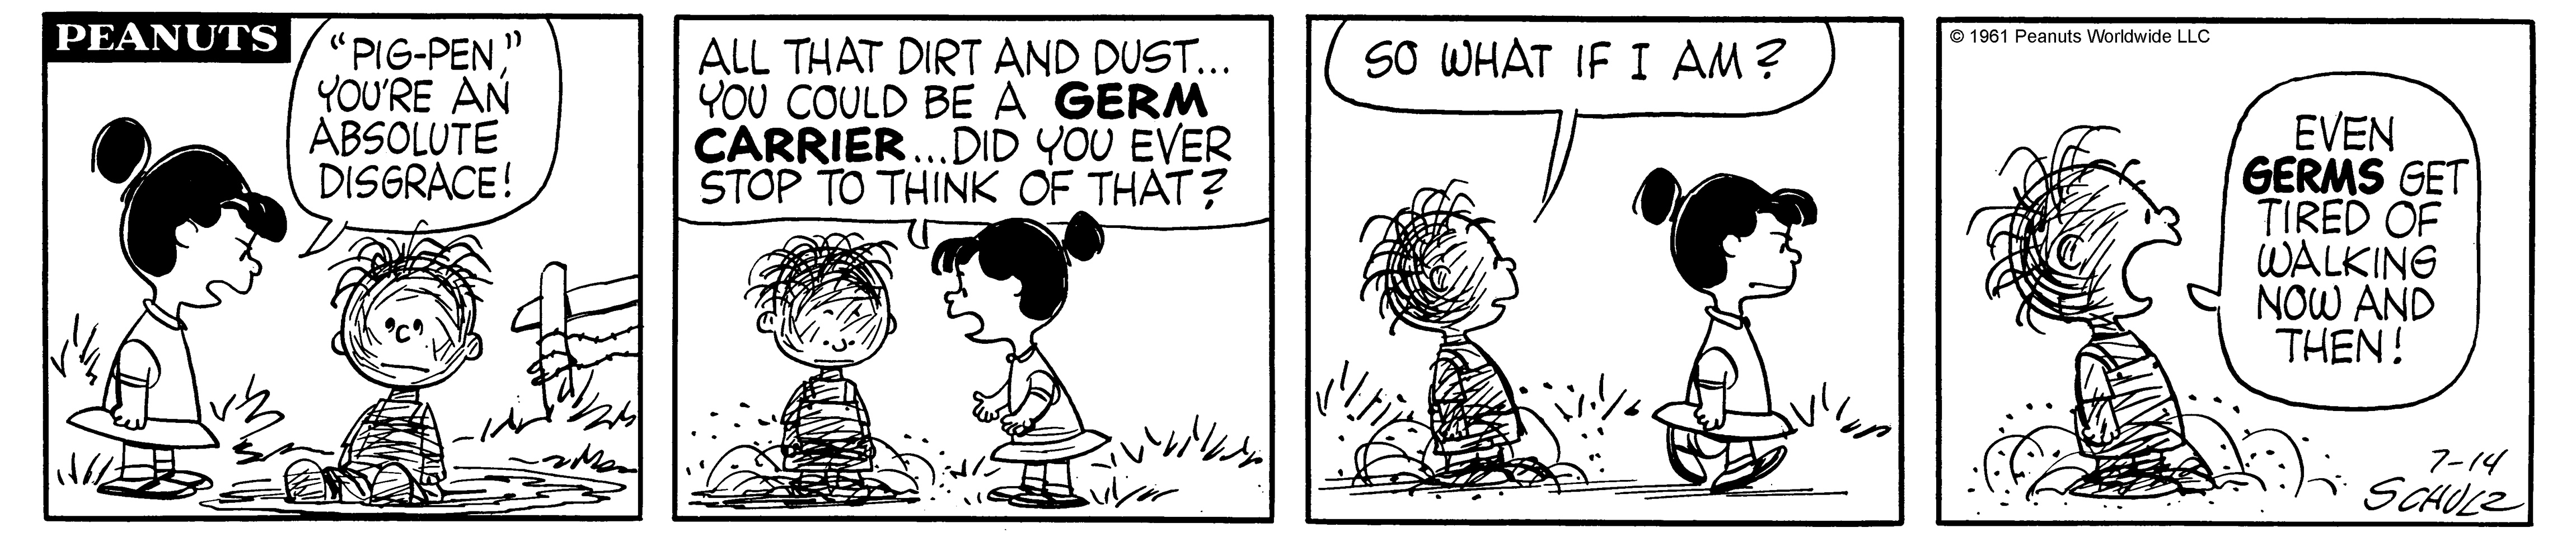 A black and white comic strip of a girl yelling at a boy covered in dust.